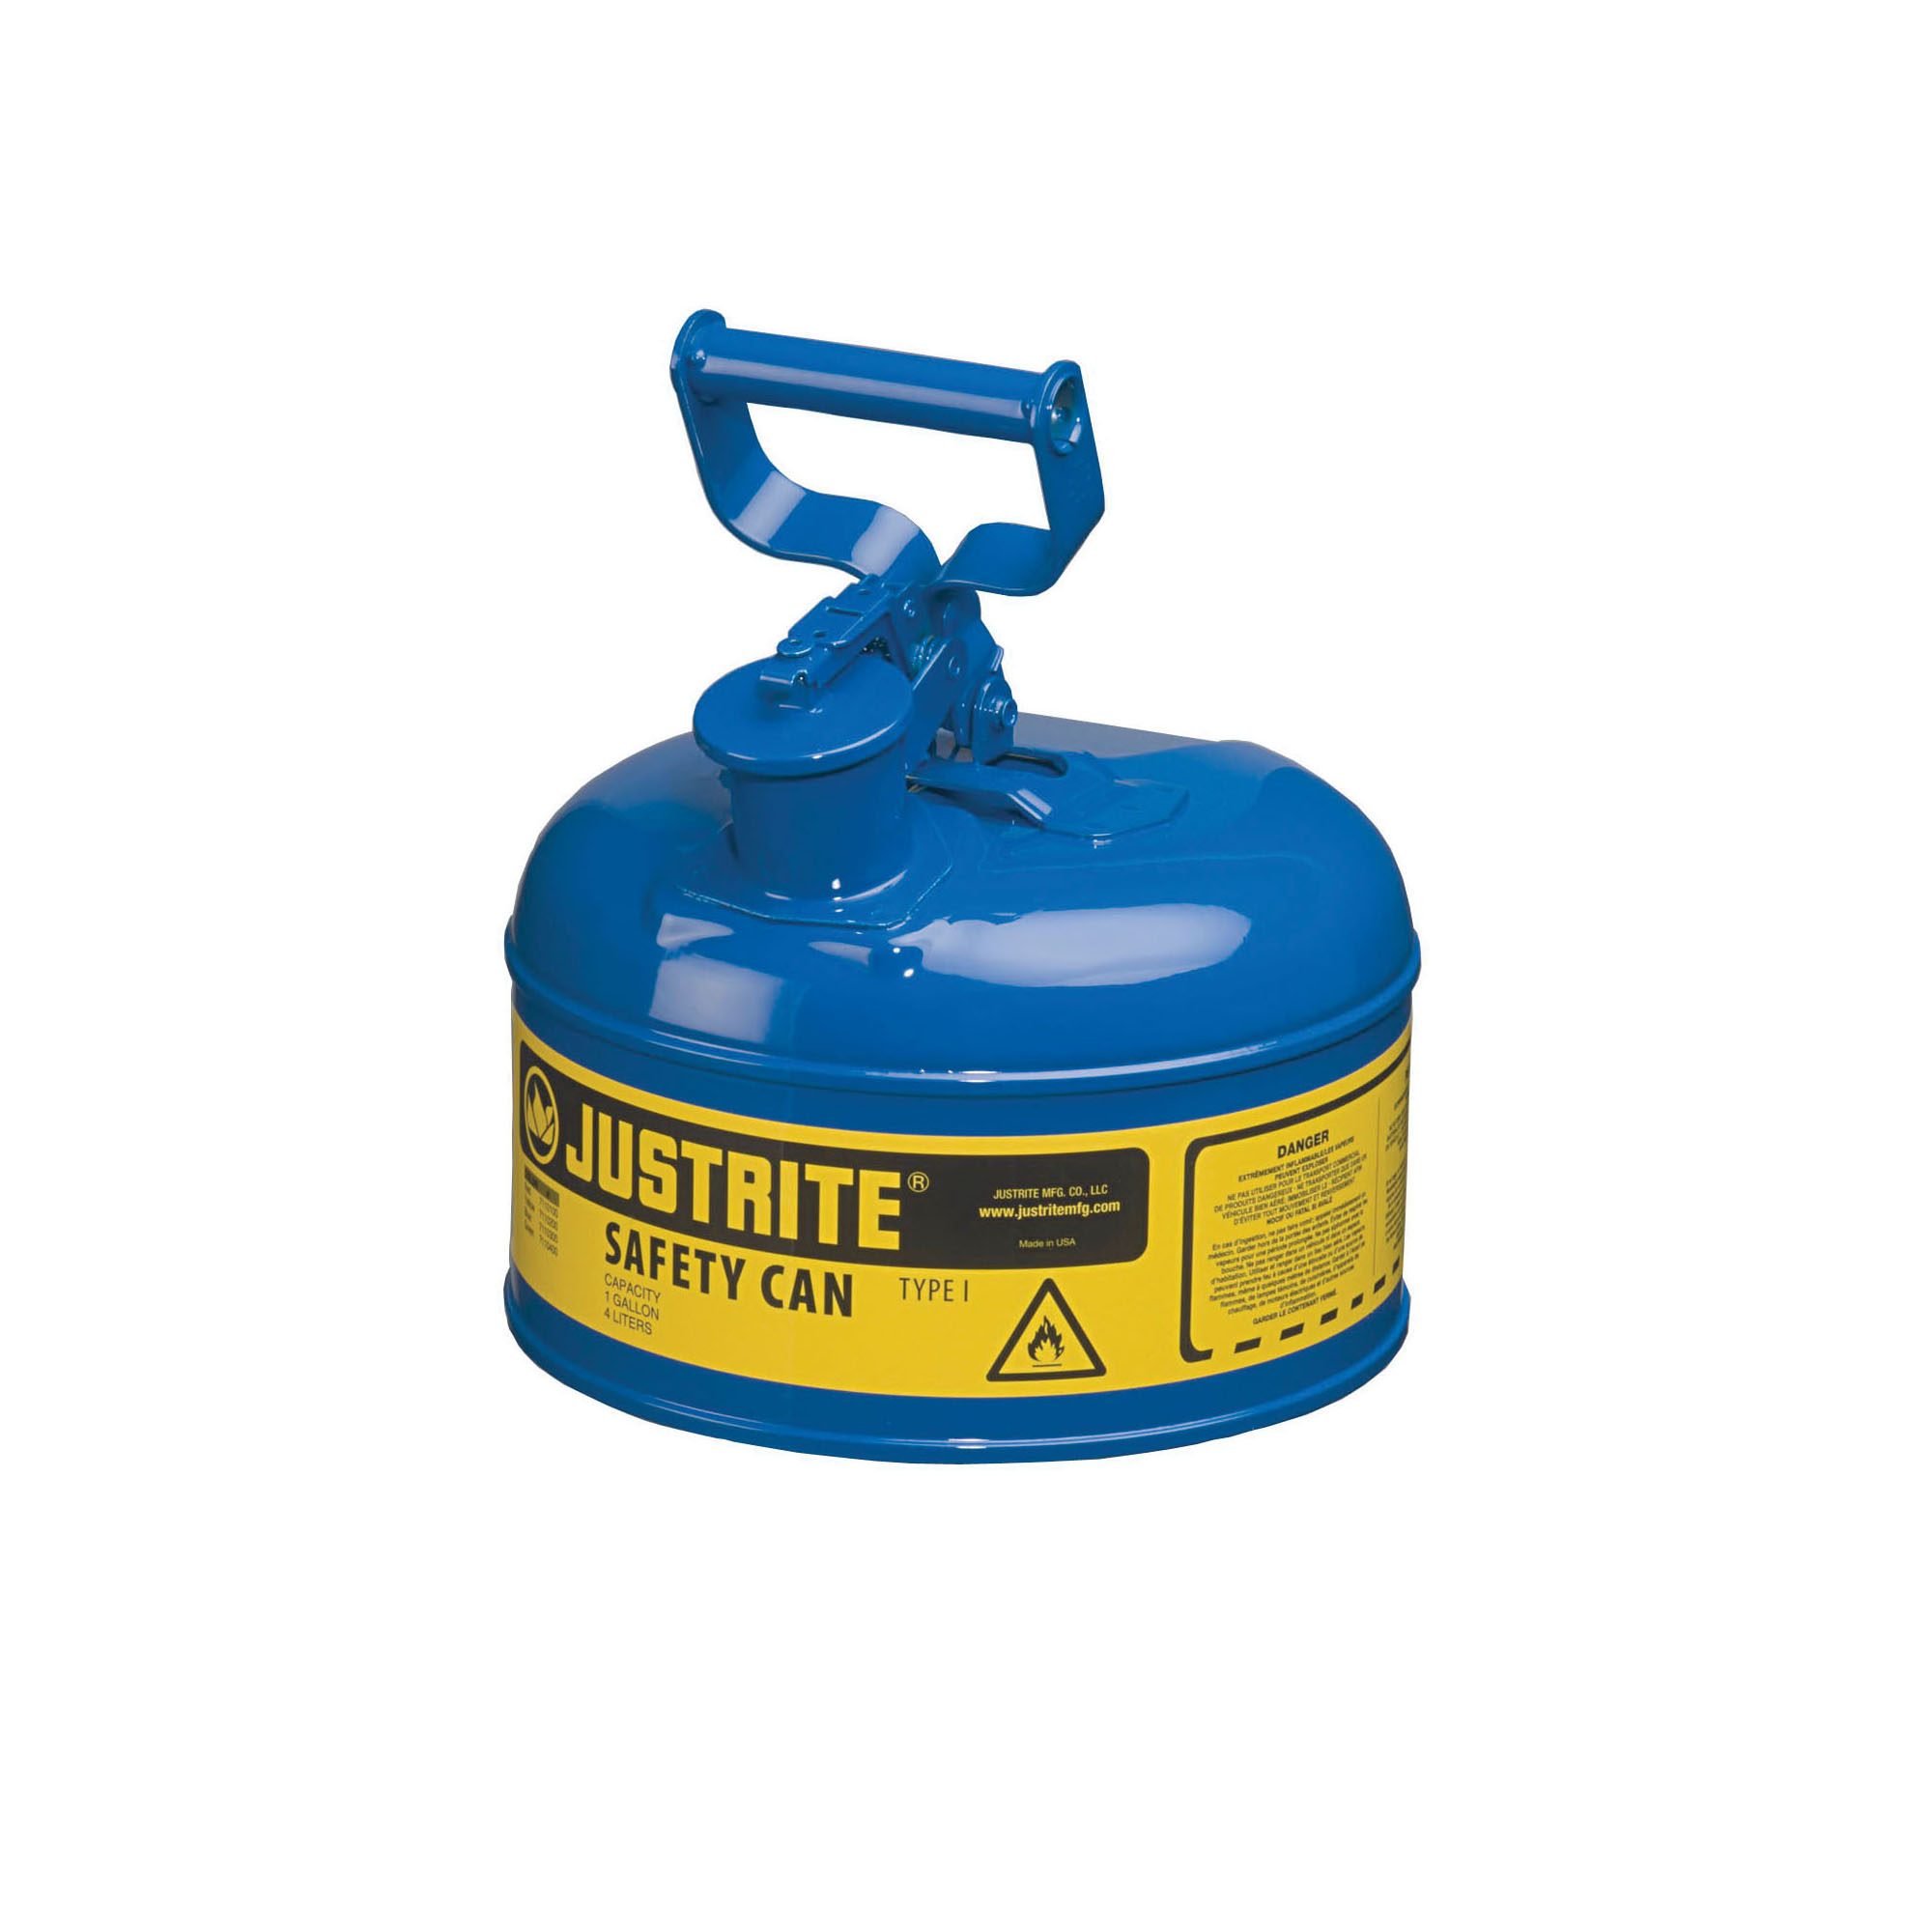 Justrite® 7110300 Type I Safety Can With Swinging Handle and Stainless Steel Flame Arrester, 1 gal Capacity, 9-1/2 in Dia x 11 in H, Steel, Blue